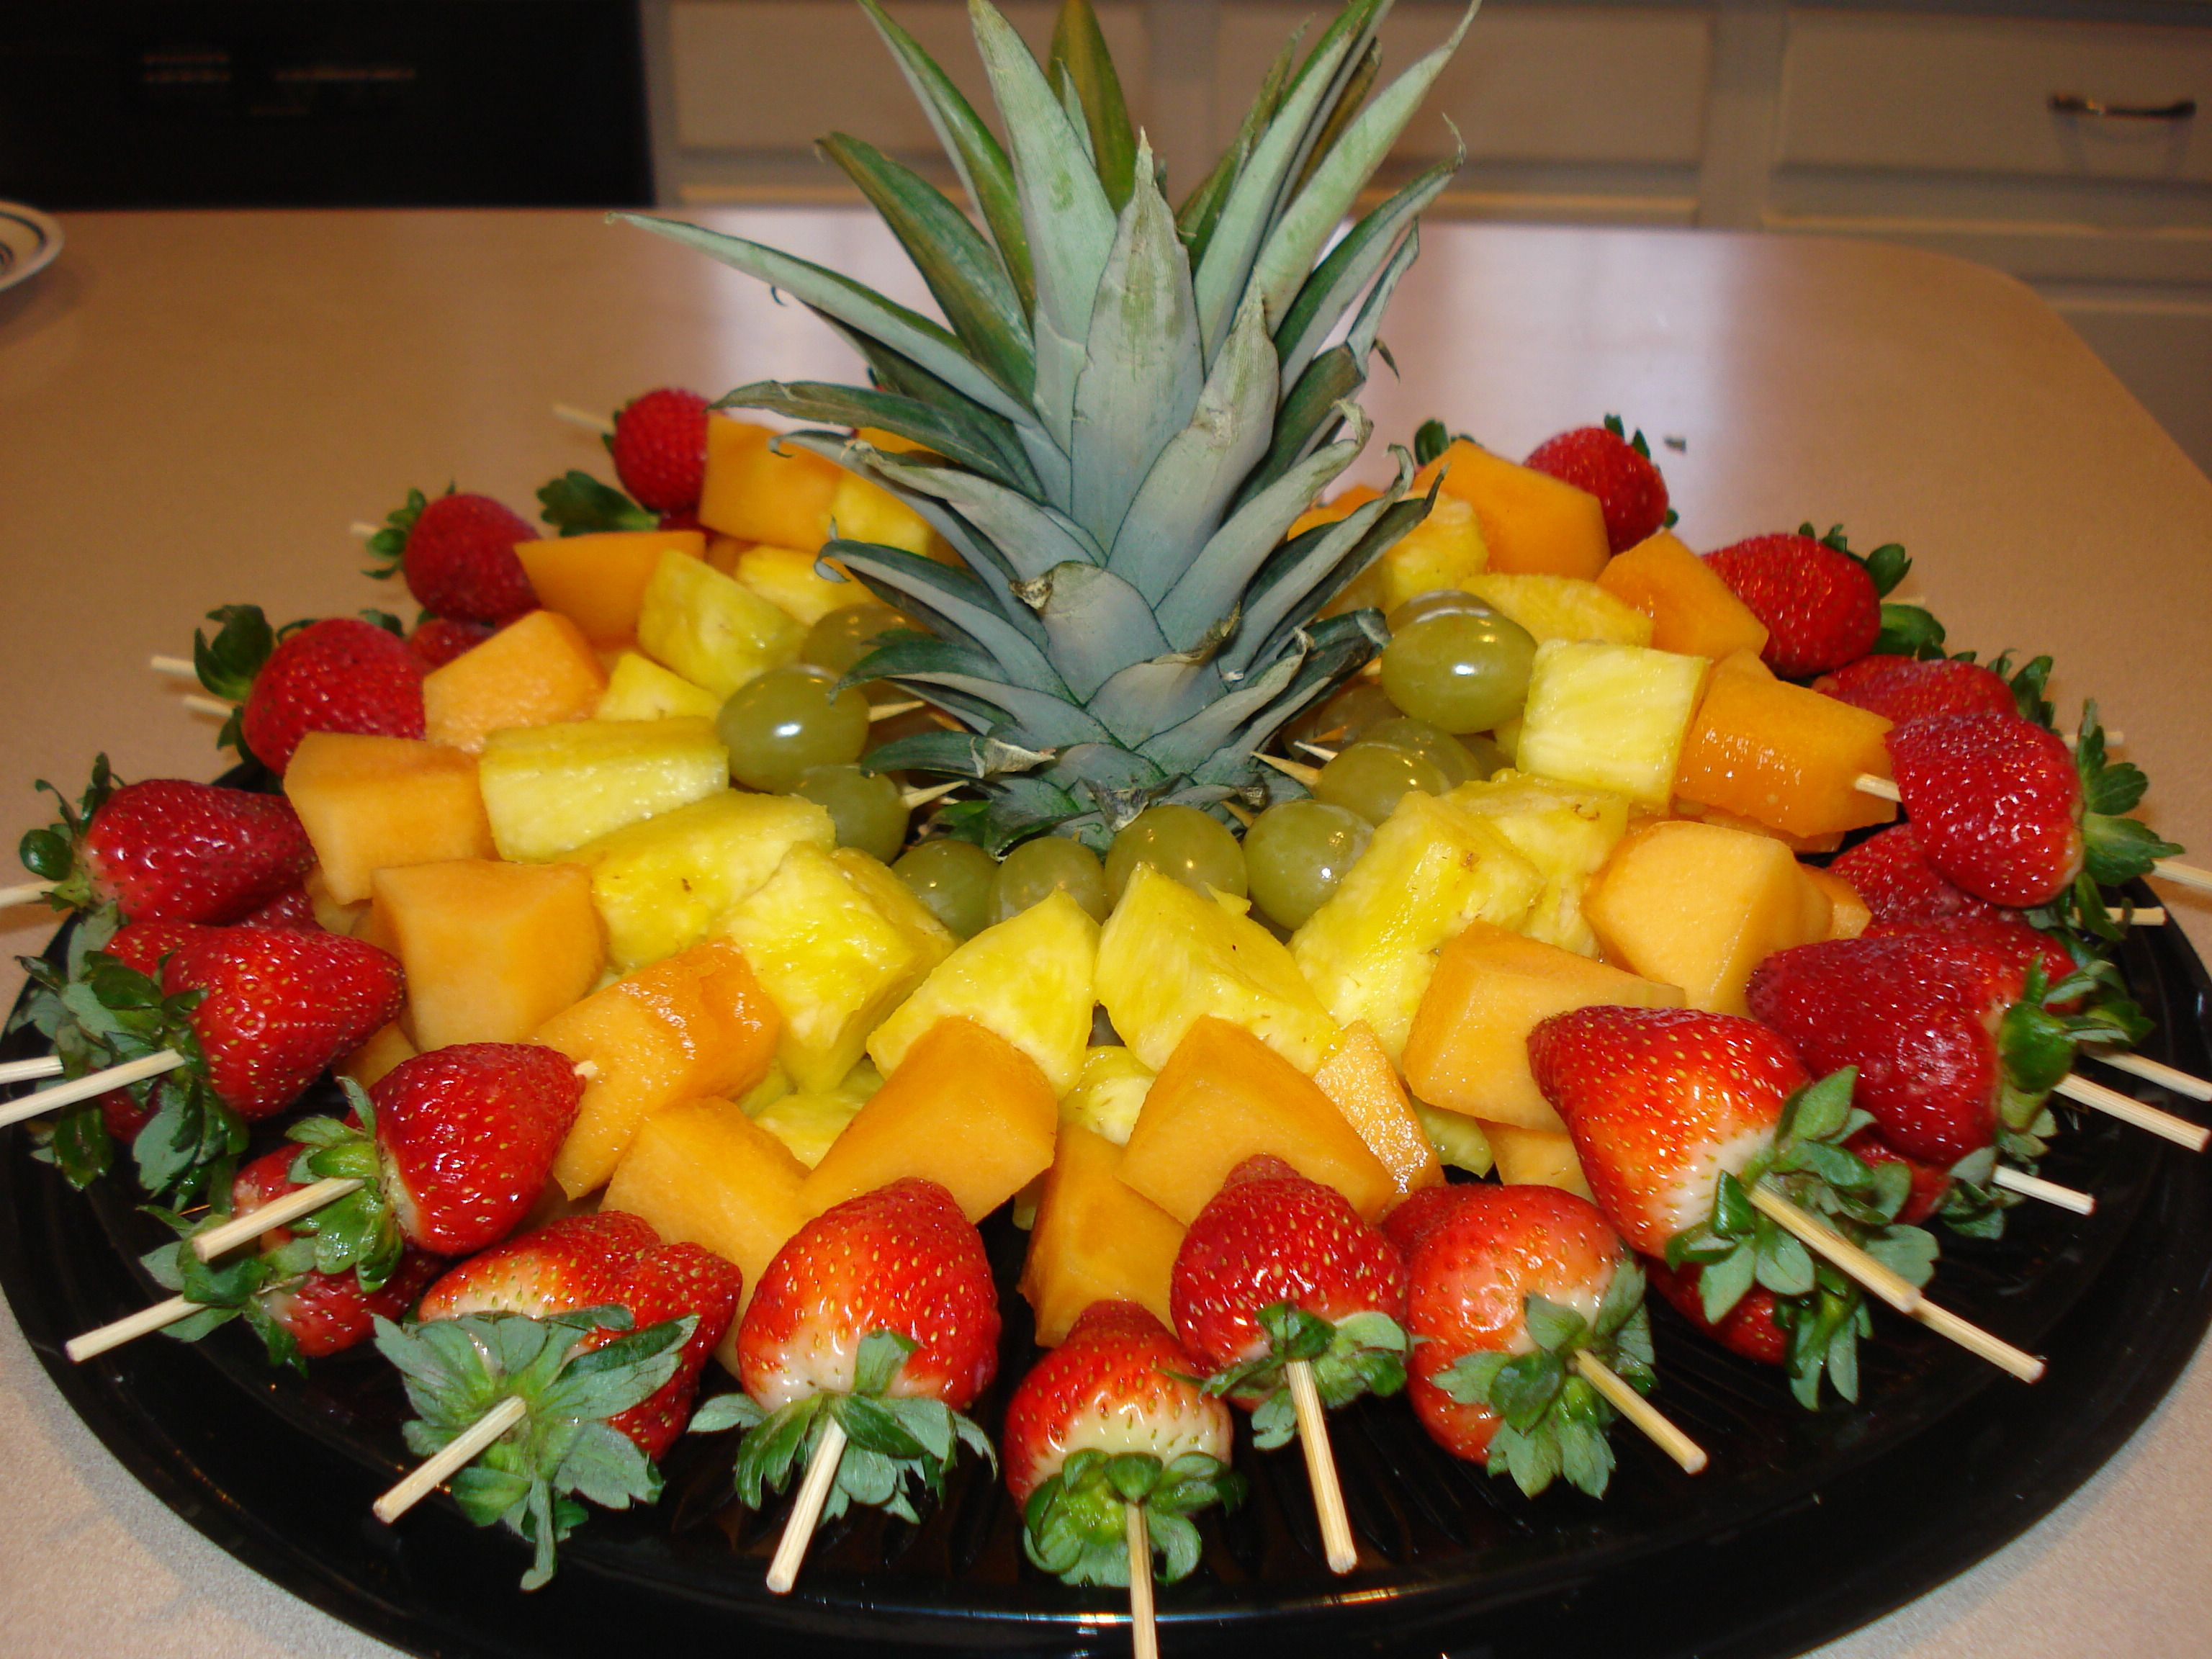 Fruit skewers for a party cut top off of pineapple to Ananas dekoration